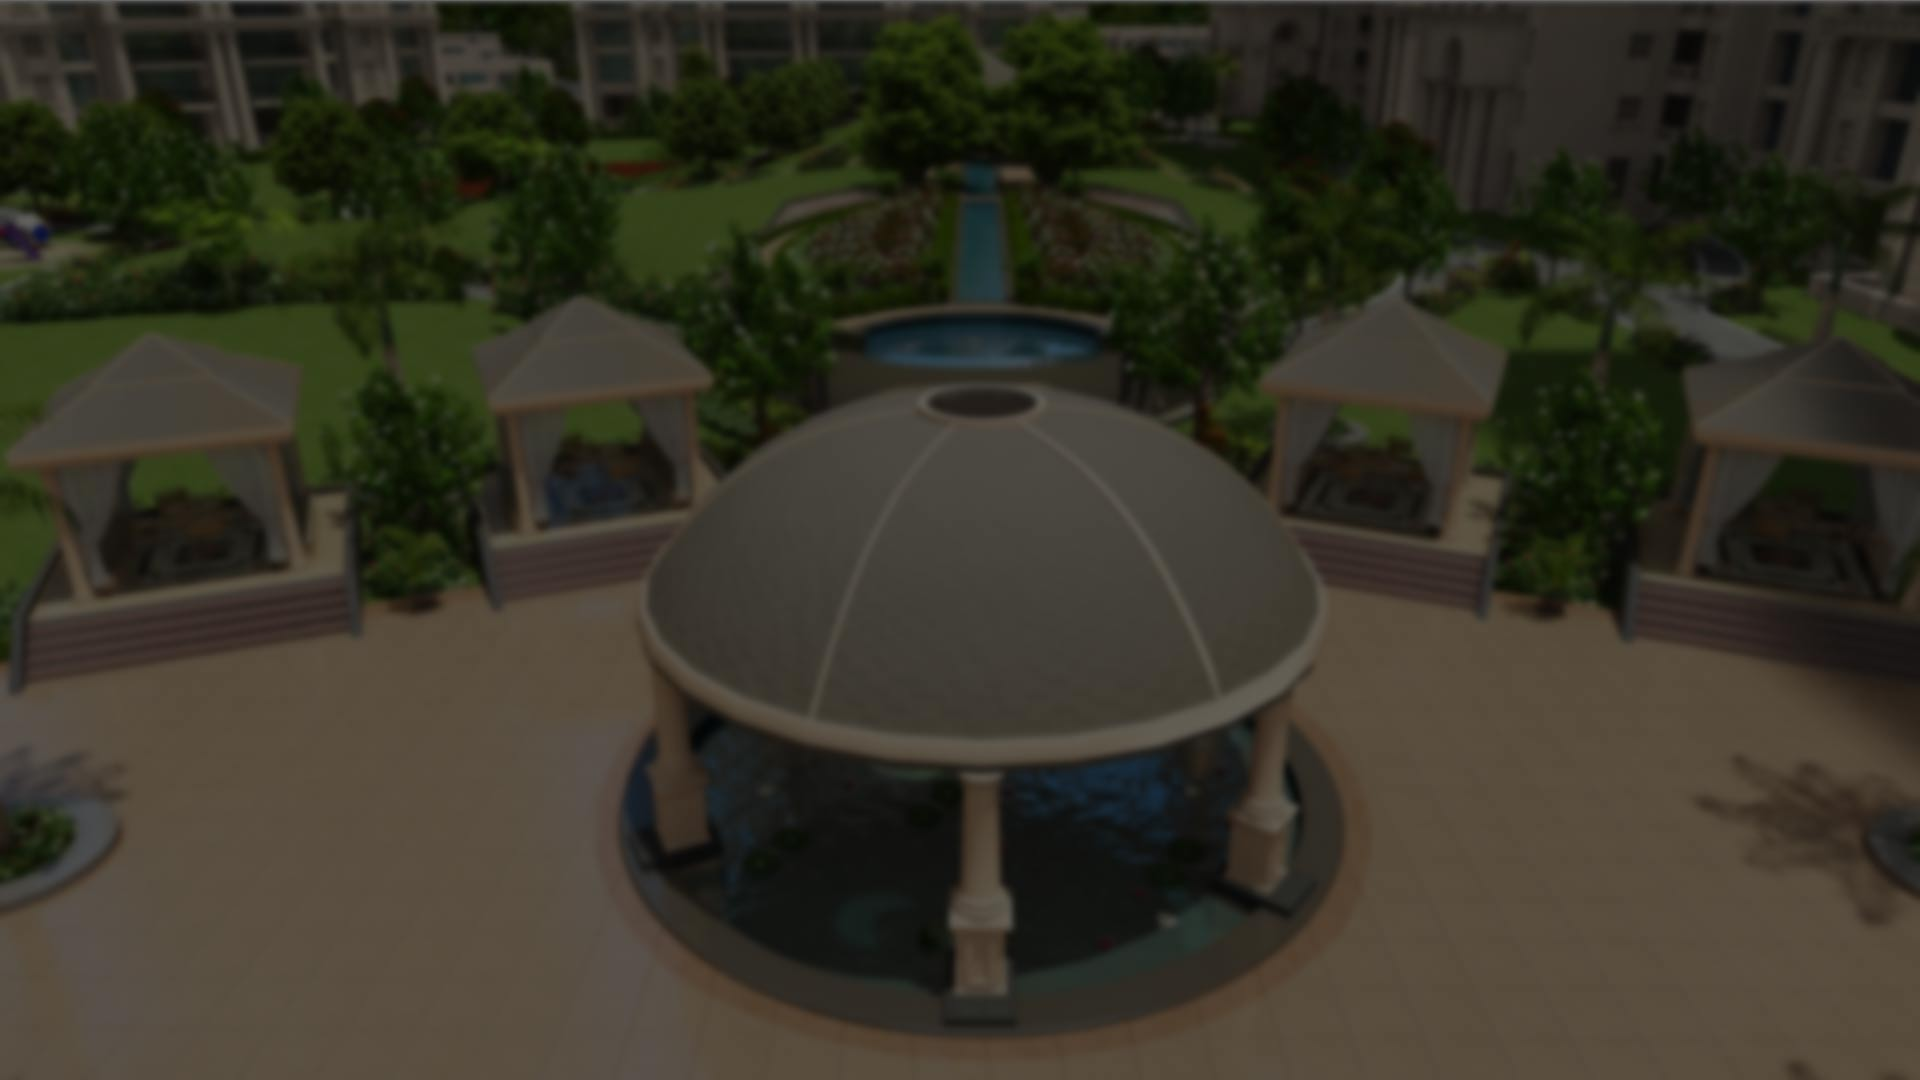 3d Rendering Company in india